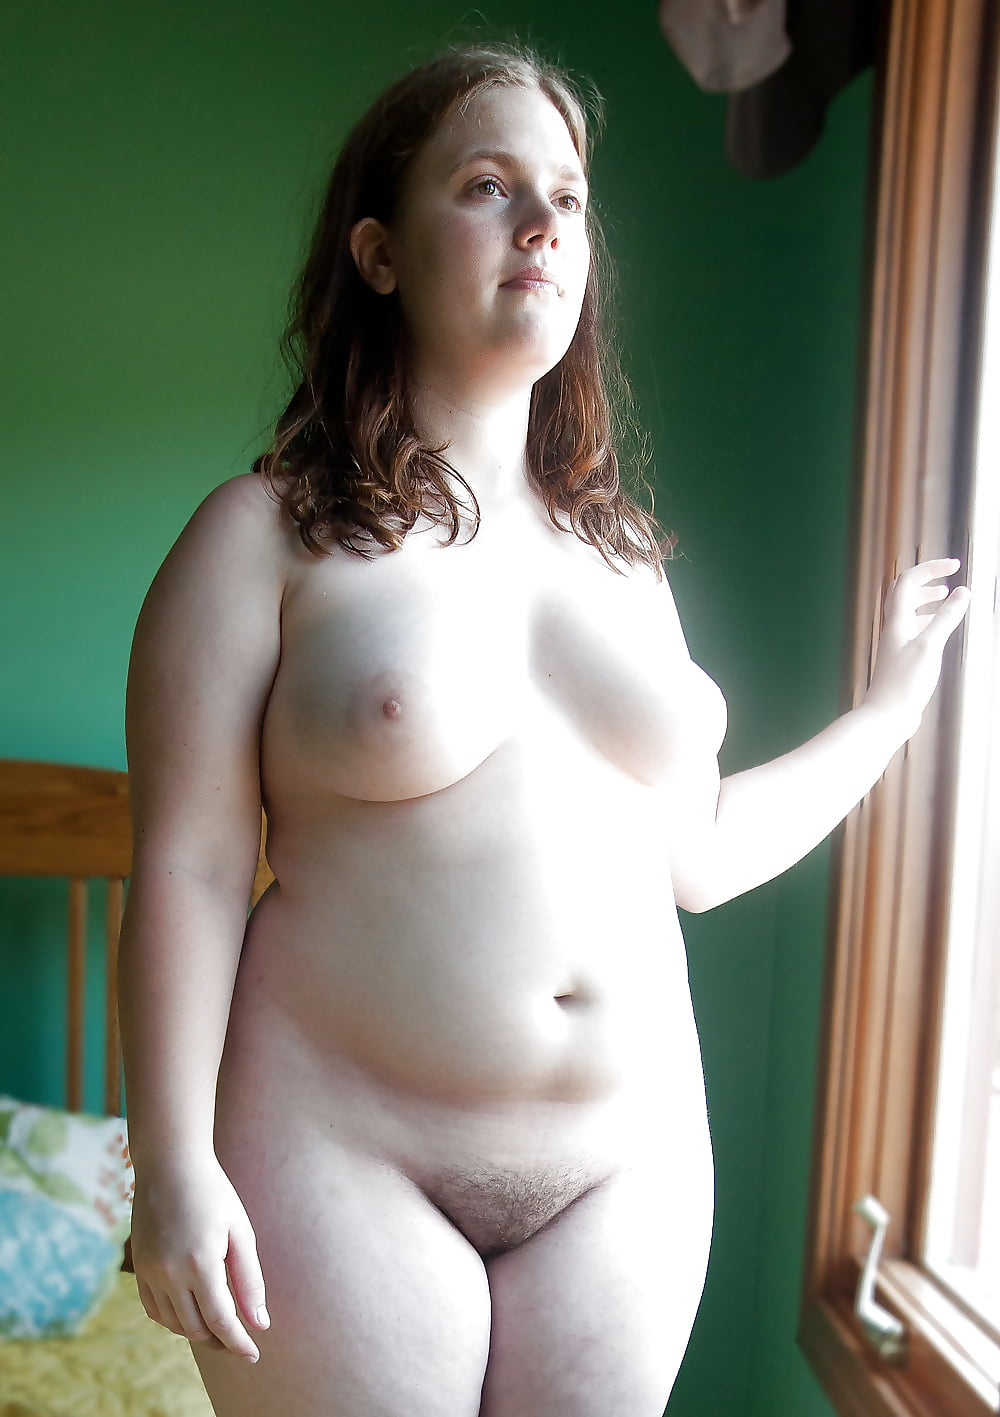 Chubby young girl dancing naked — pic 14